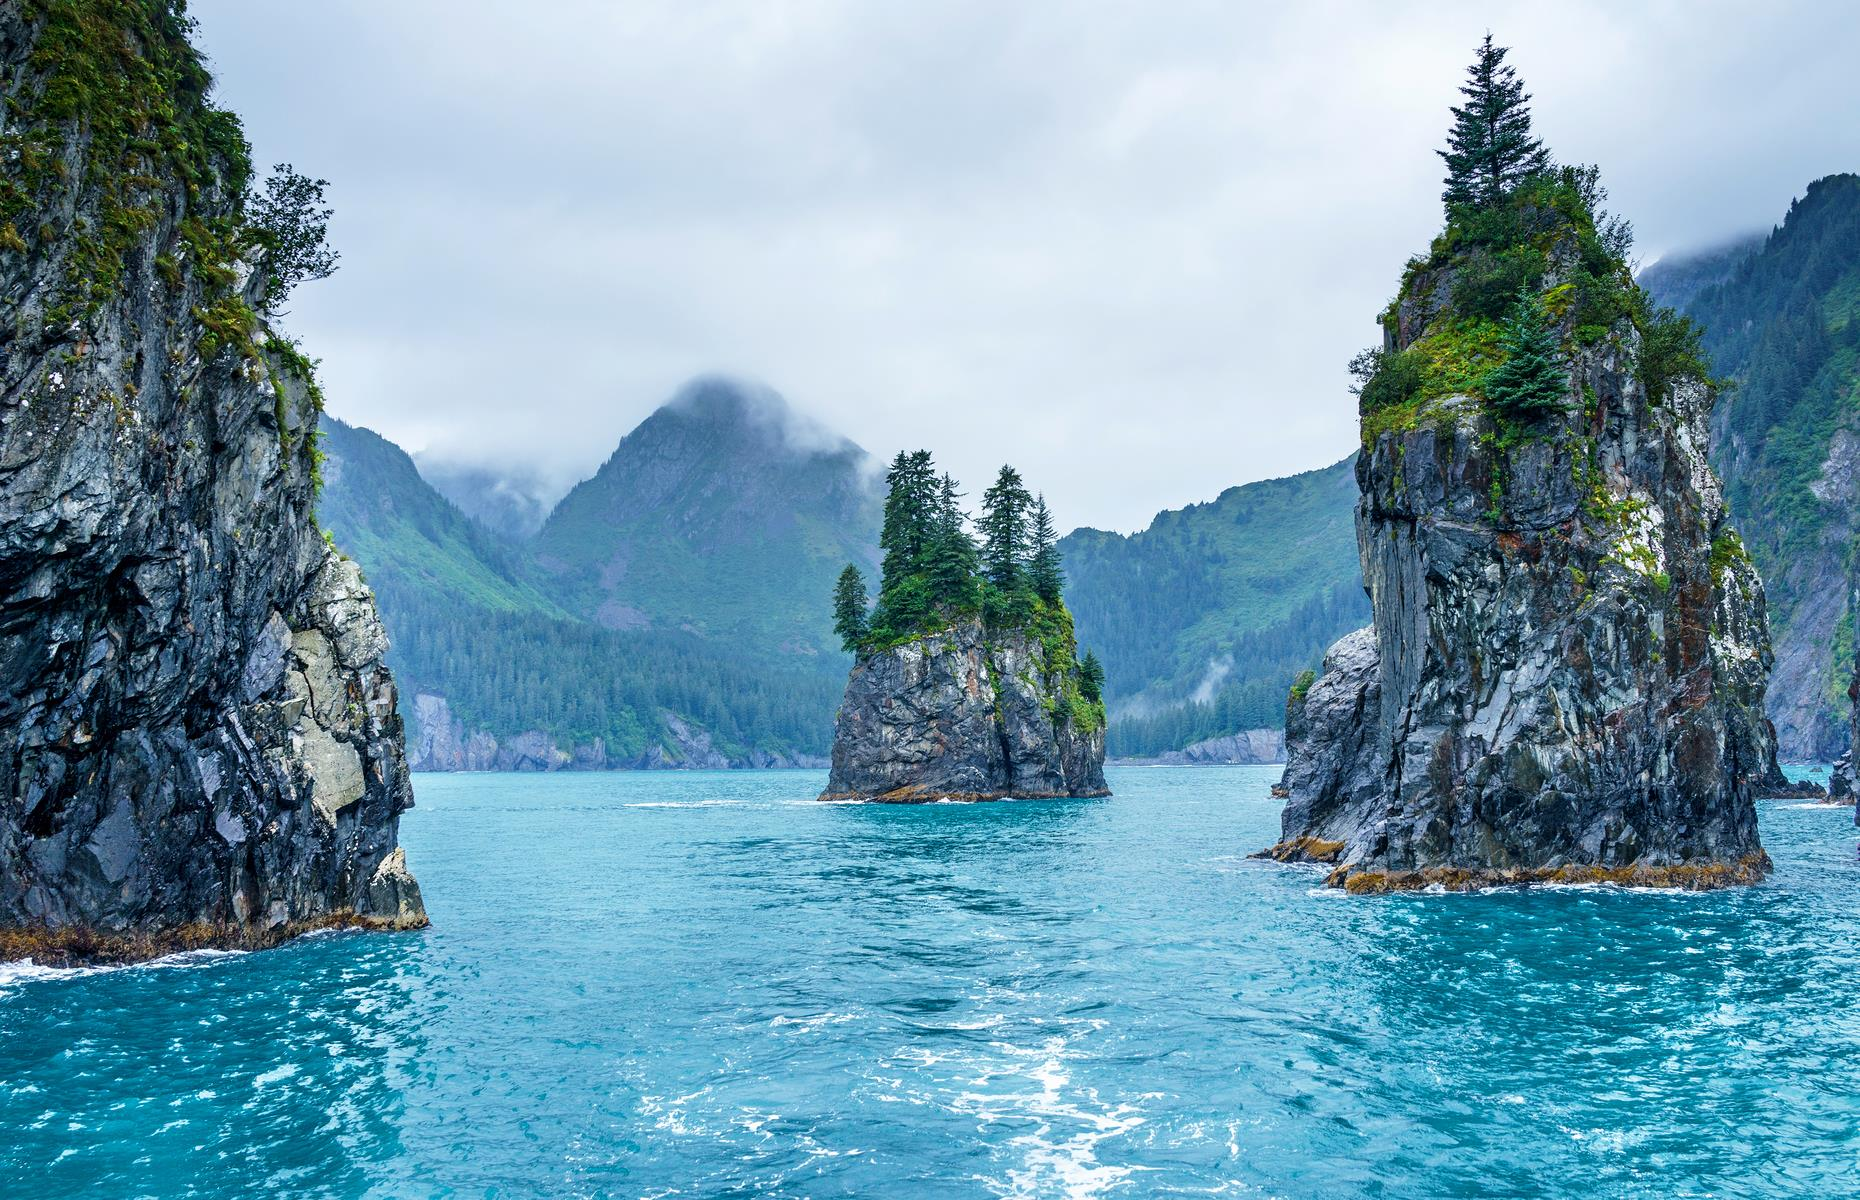 Slide 36 of 61: At a quick glance, this bay, with its blue waters and sea stacks, could be in Southeast Asia – instead it's actually the chillier waters of Alaska's Kenai Fjords National Park. The product of millennia of erosion, these sea stacks can be found peppered across the park, from Aialik Bay to the craggy Chiswell Islands. They're home to seabirds such as cormorants and puffins, plus the park's resident bats. The best way to take them in is from a kayak on the water.